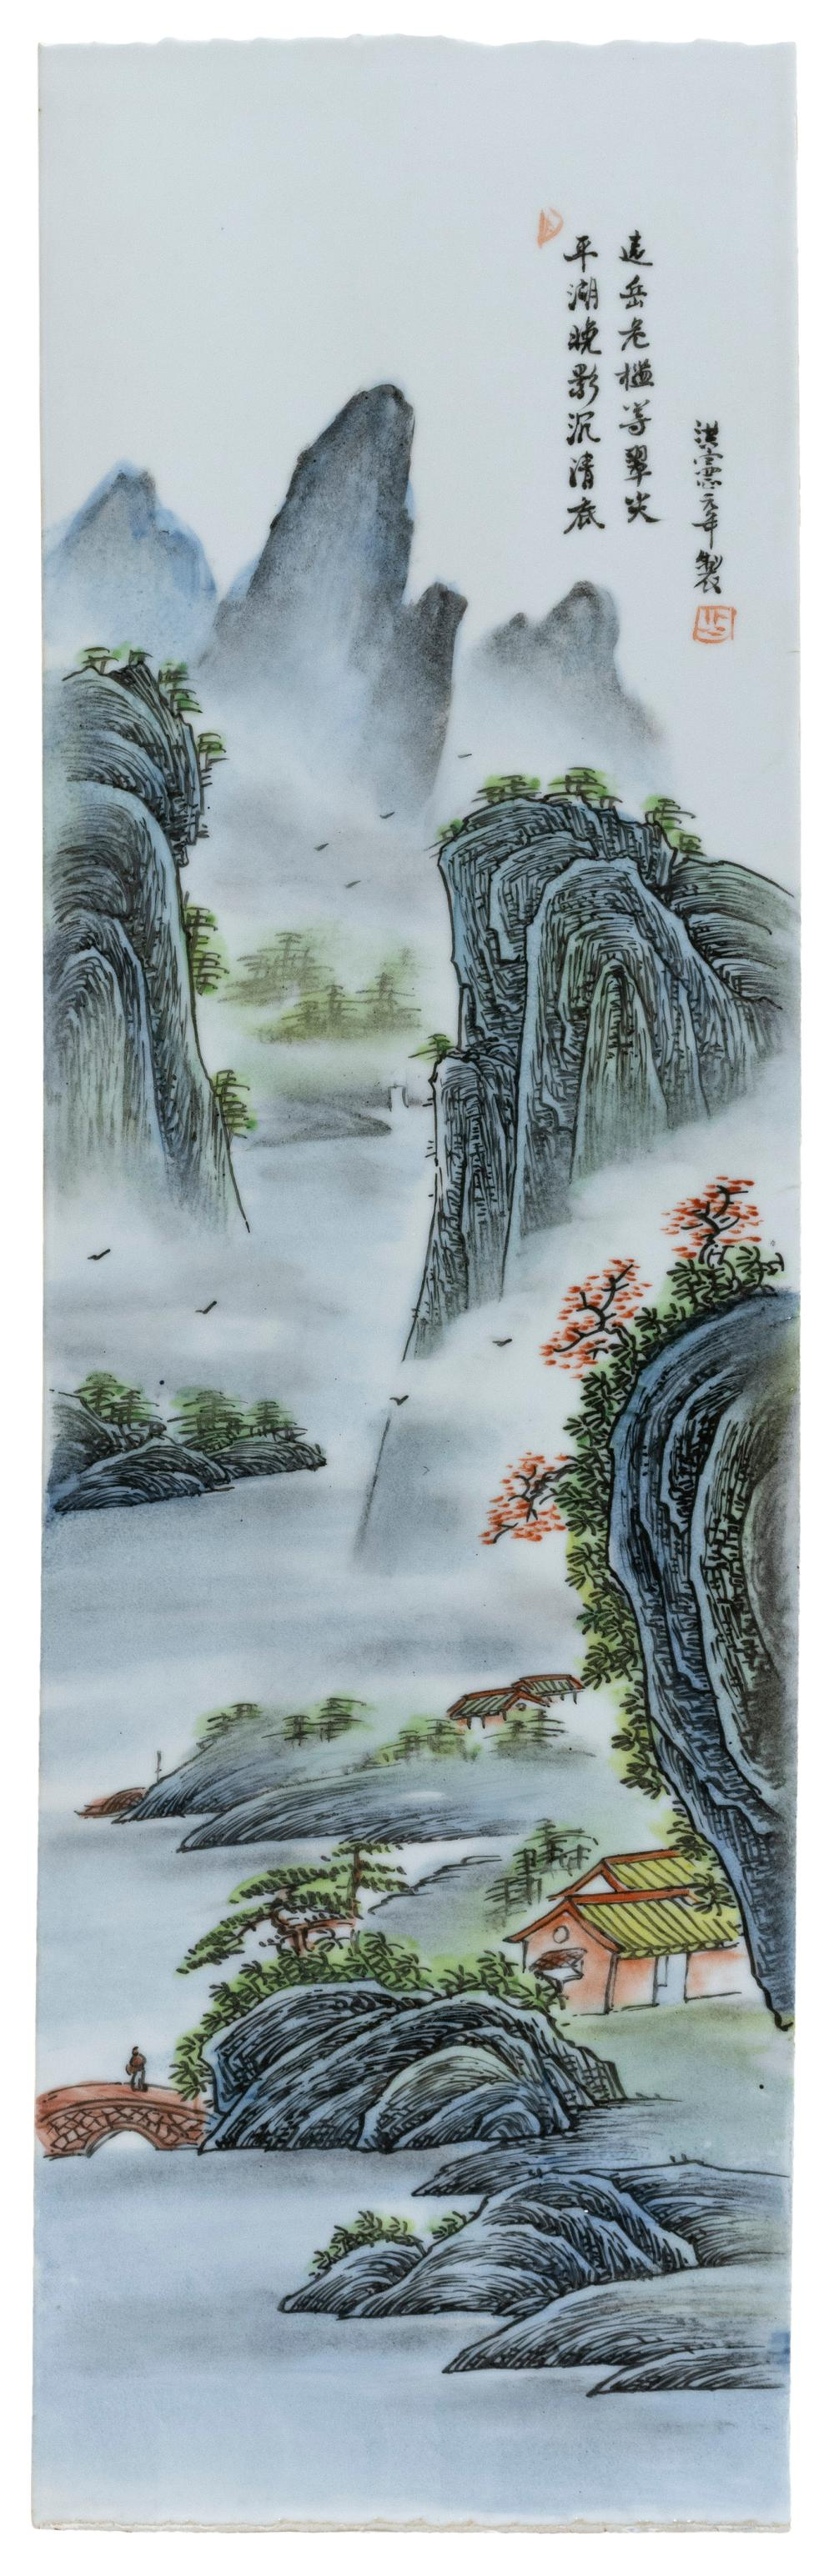 "CHINESE FAMILLE VERTE TILE PAINTING Depicts a southern Chinese mountain landscape. Calligraphy at upper right. 29"" x 8"" sight. Unfra..."